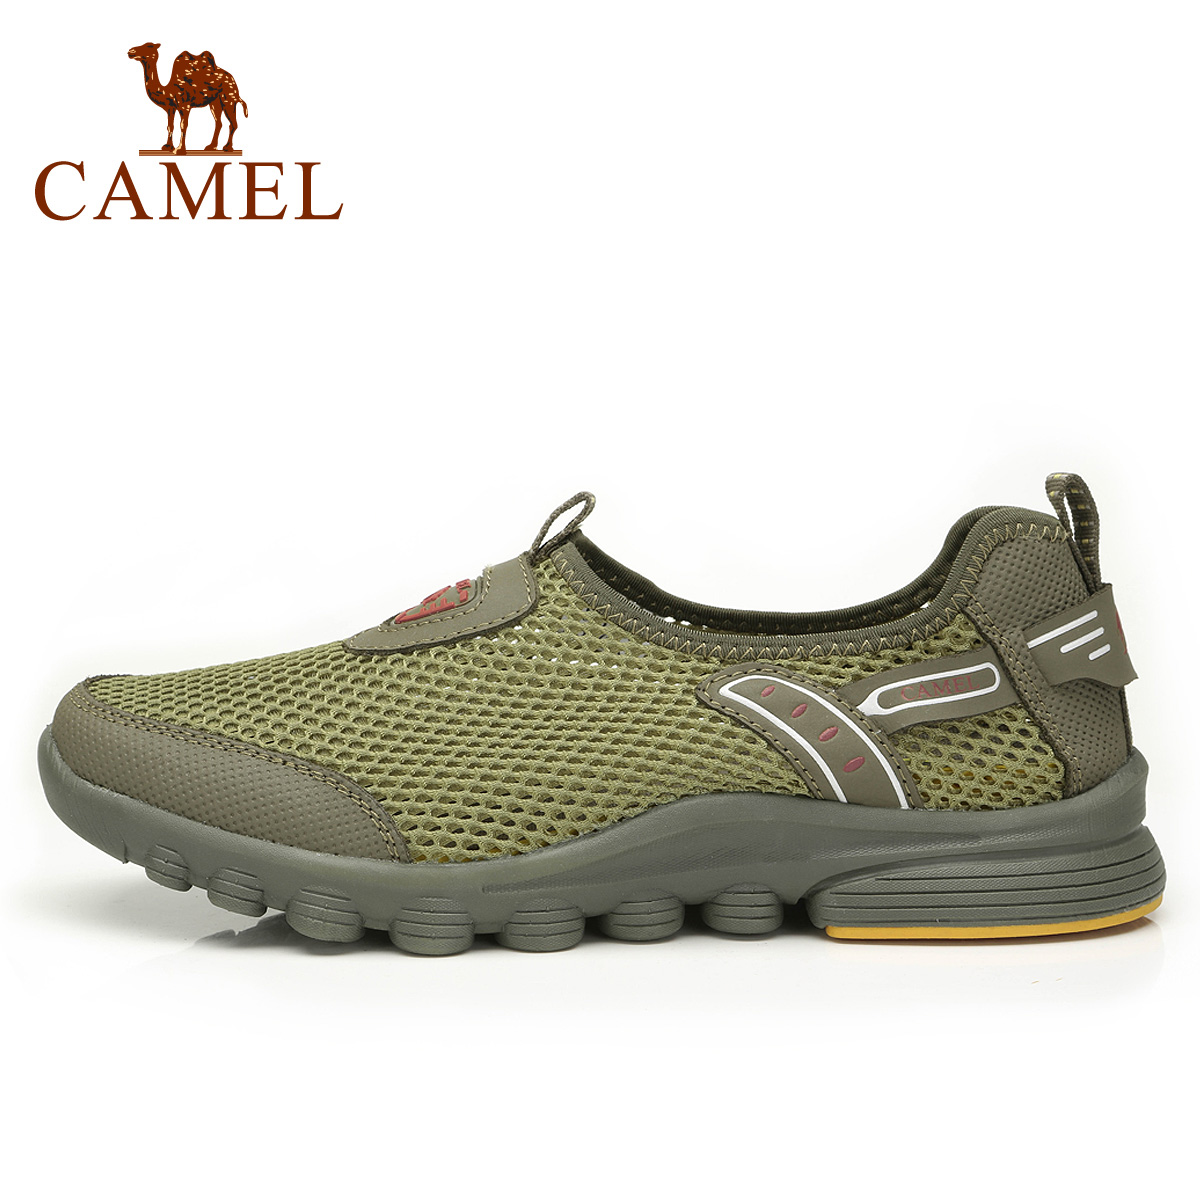 2013 camel outdoor hiking outdoor shoes men's casual shoe ultra light breathable mesh shoes, mountaineering and trekking shoes men